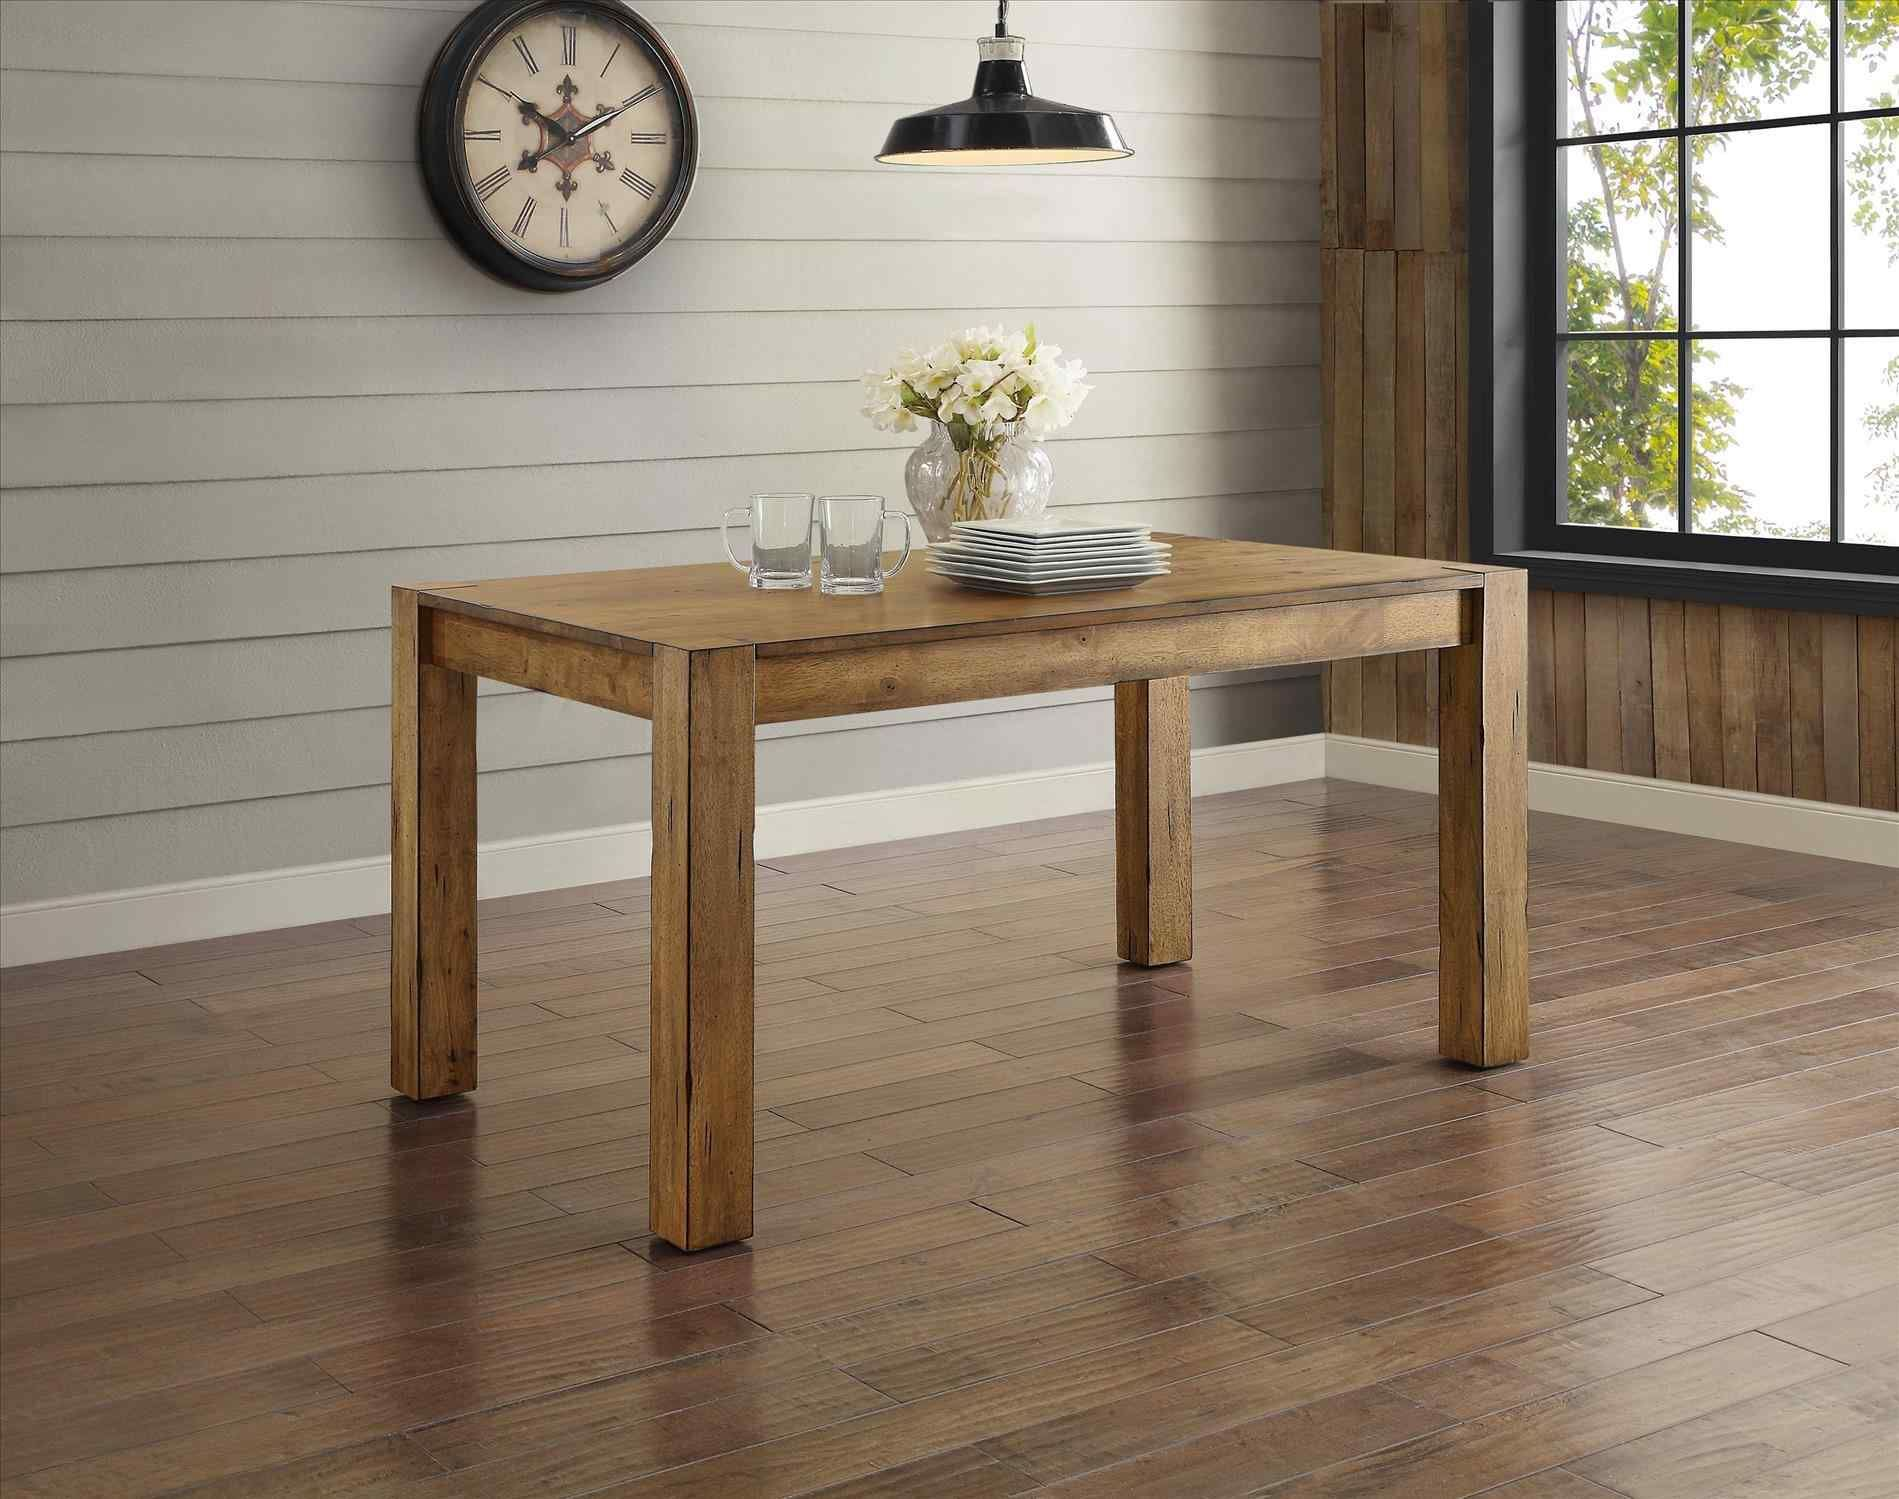 Best 11 Top Best And Amazing Rustic Furniture Sacramento 400 x 300